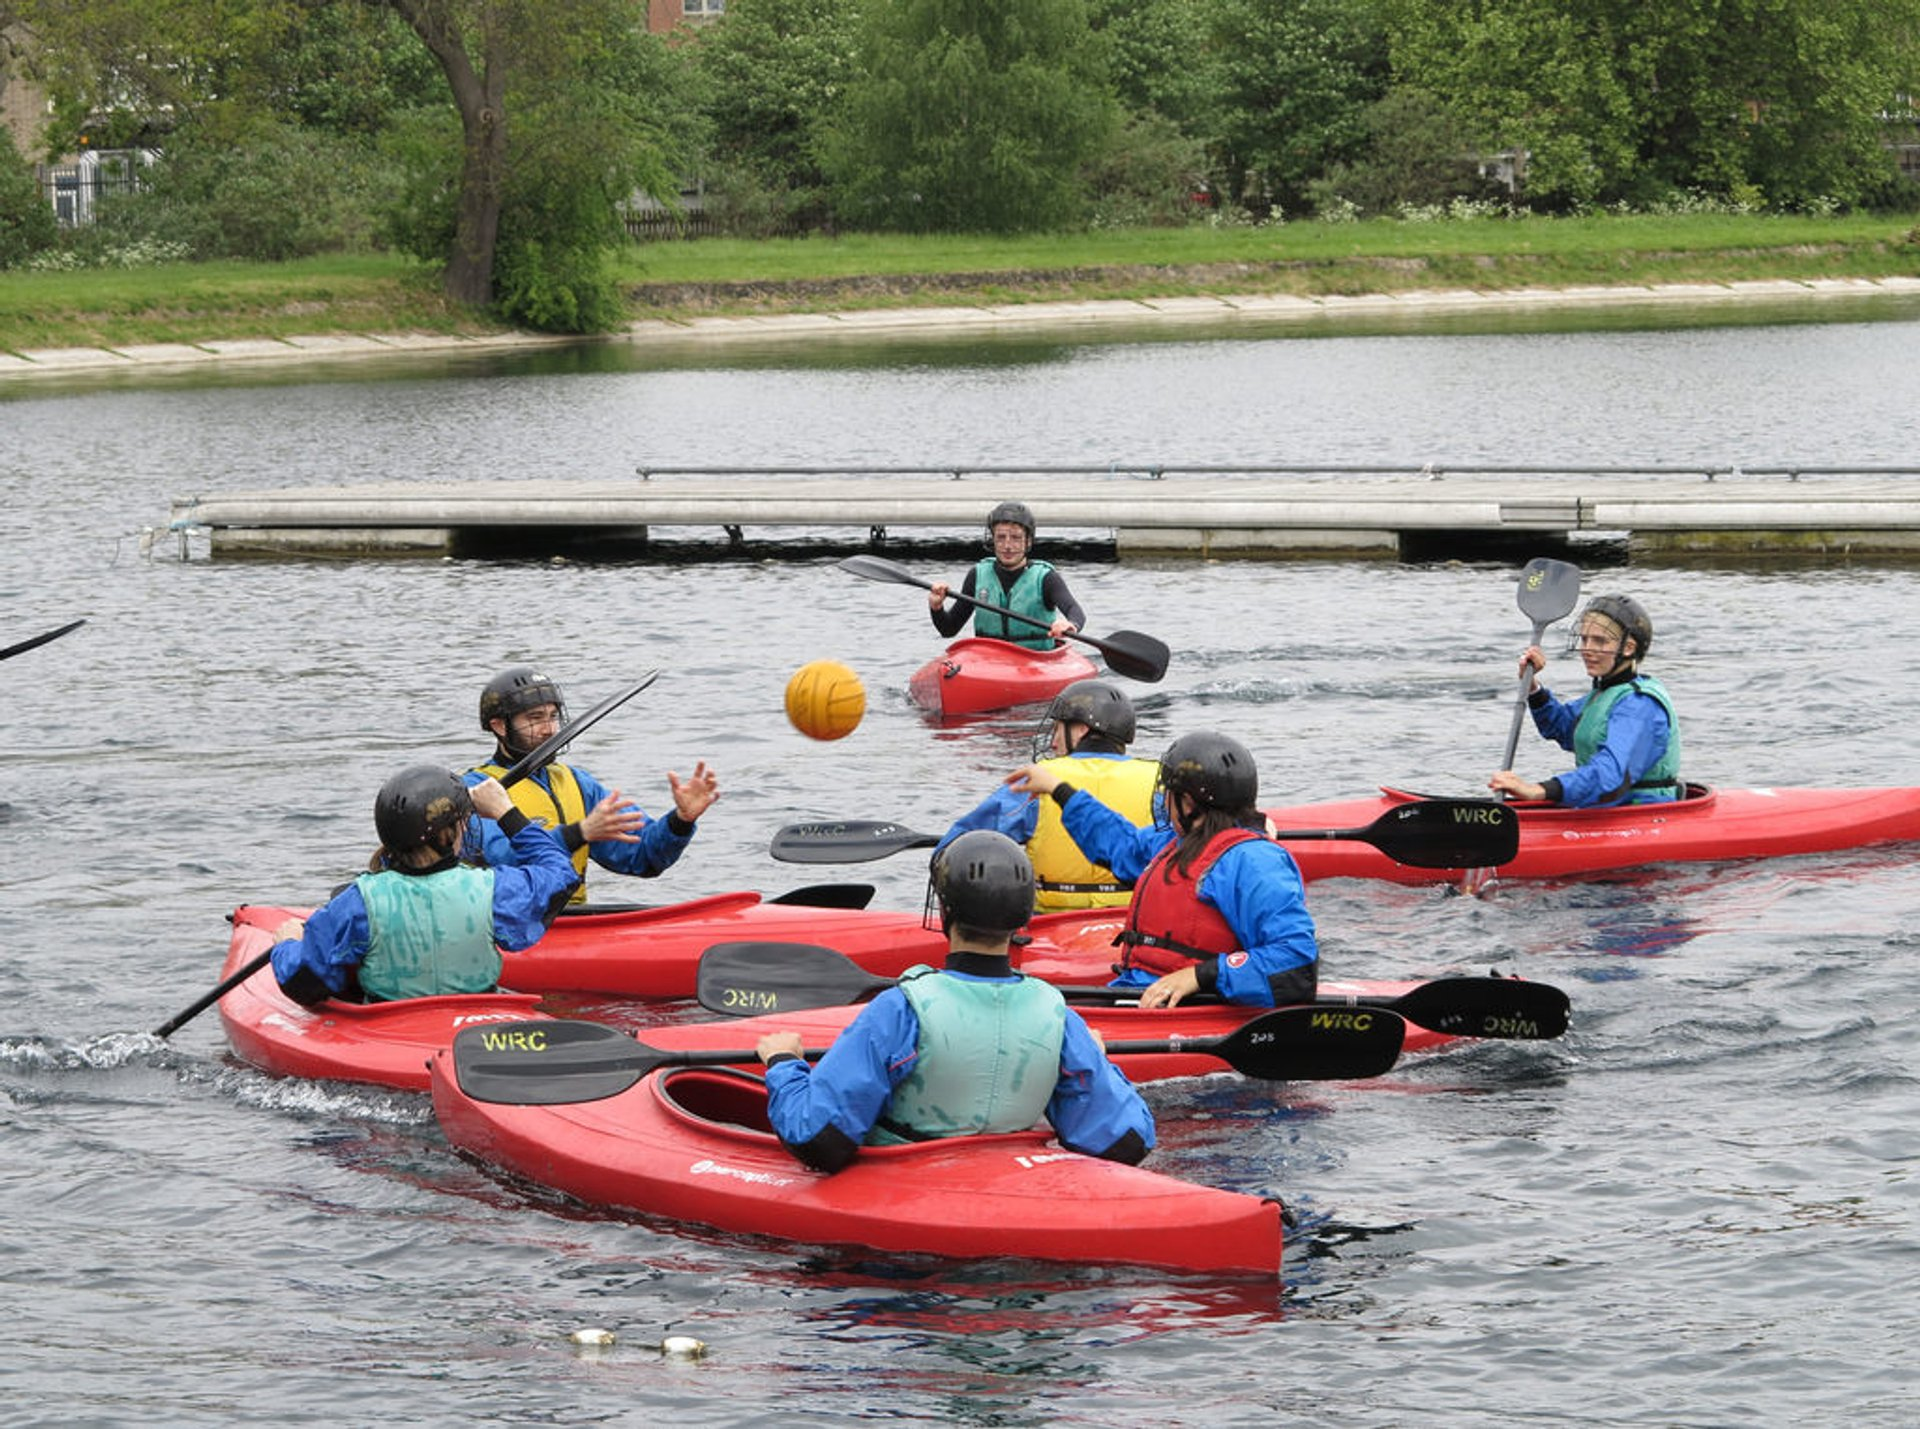 Watersports at West Reservoir Centre in London - Best Season 2020